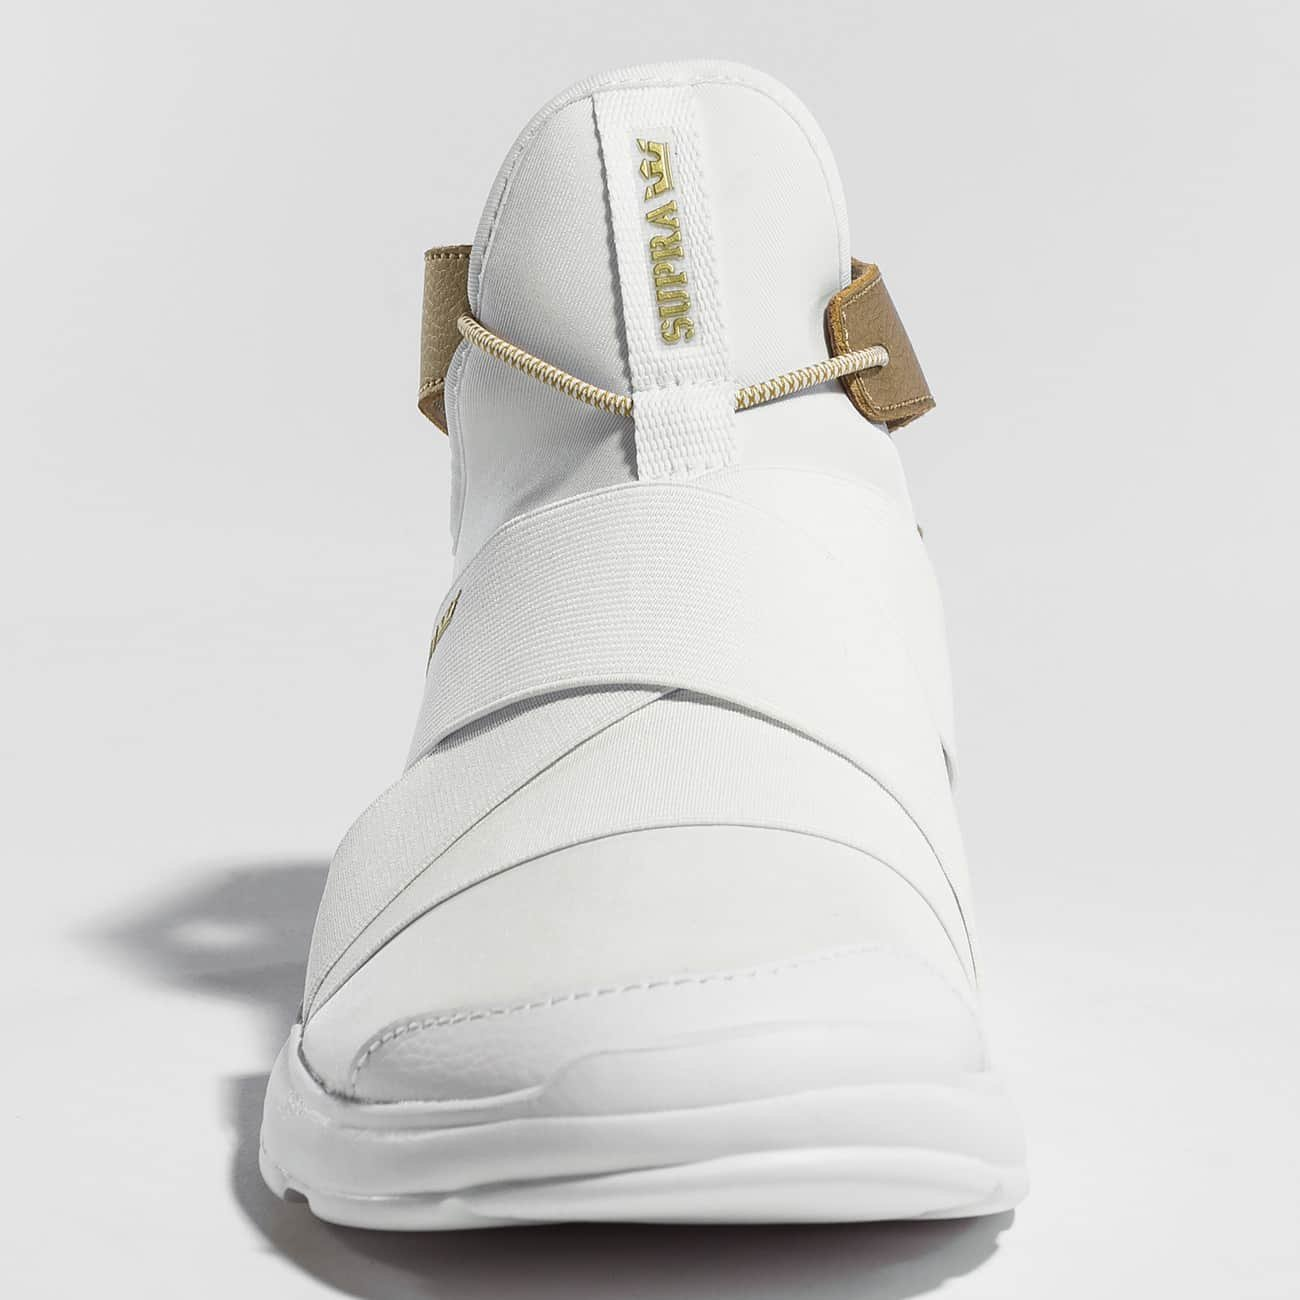 Supra Women's M Anevay Shoes B074KJNWB9 8.5 M Women's US|White/Gold-white 3e30c4